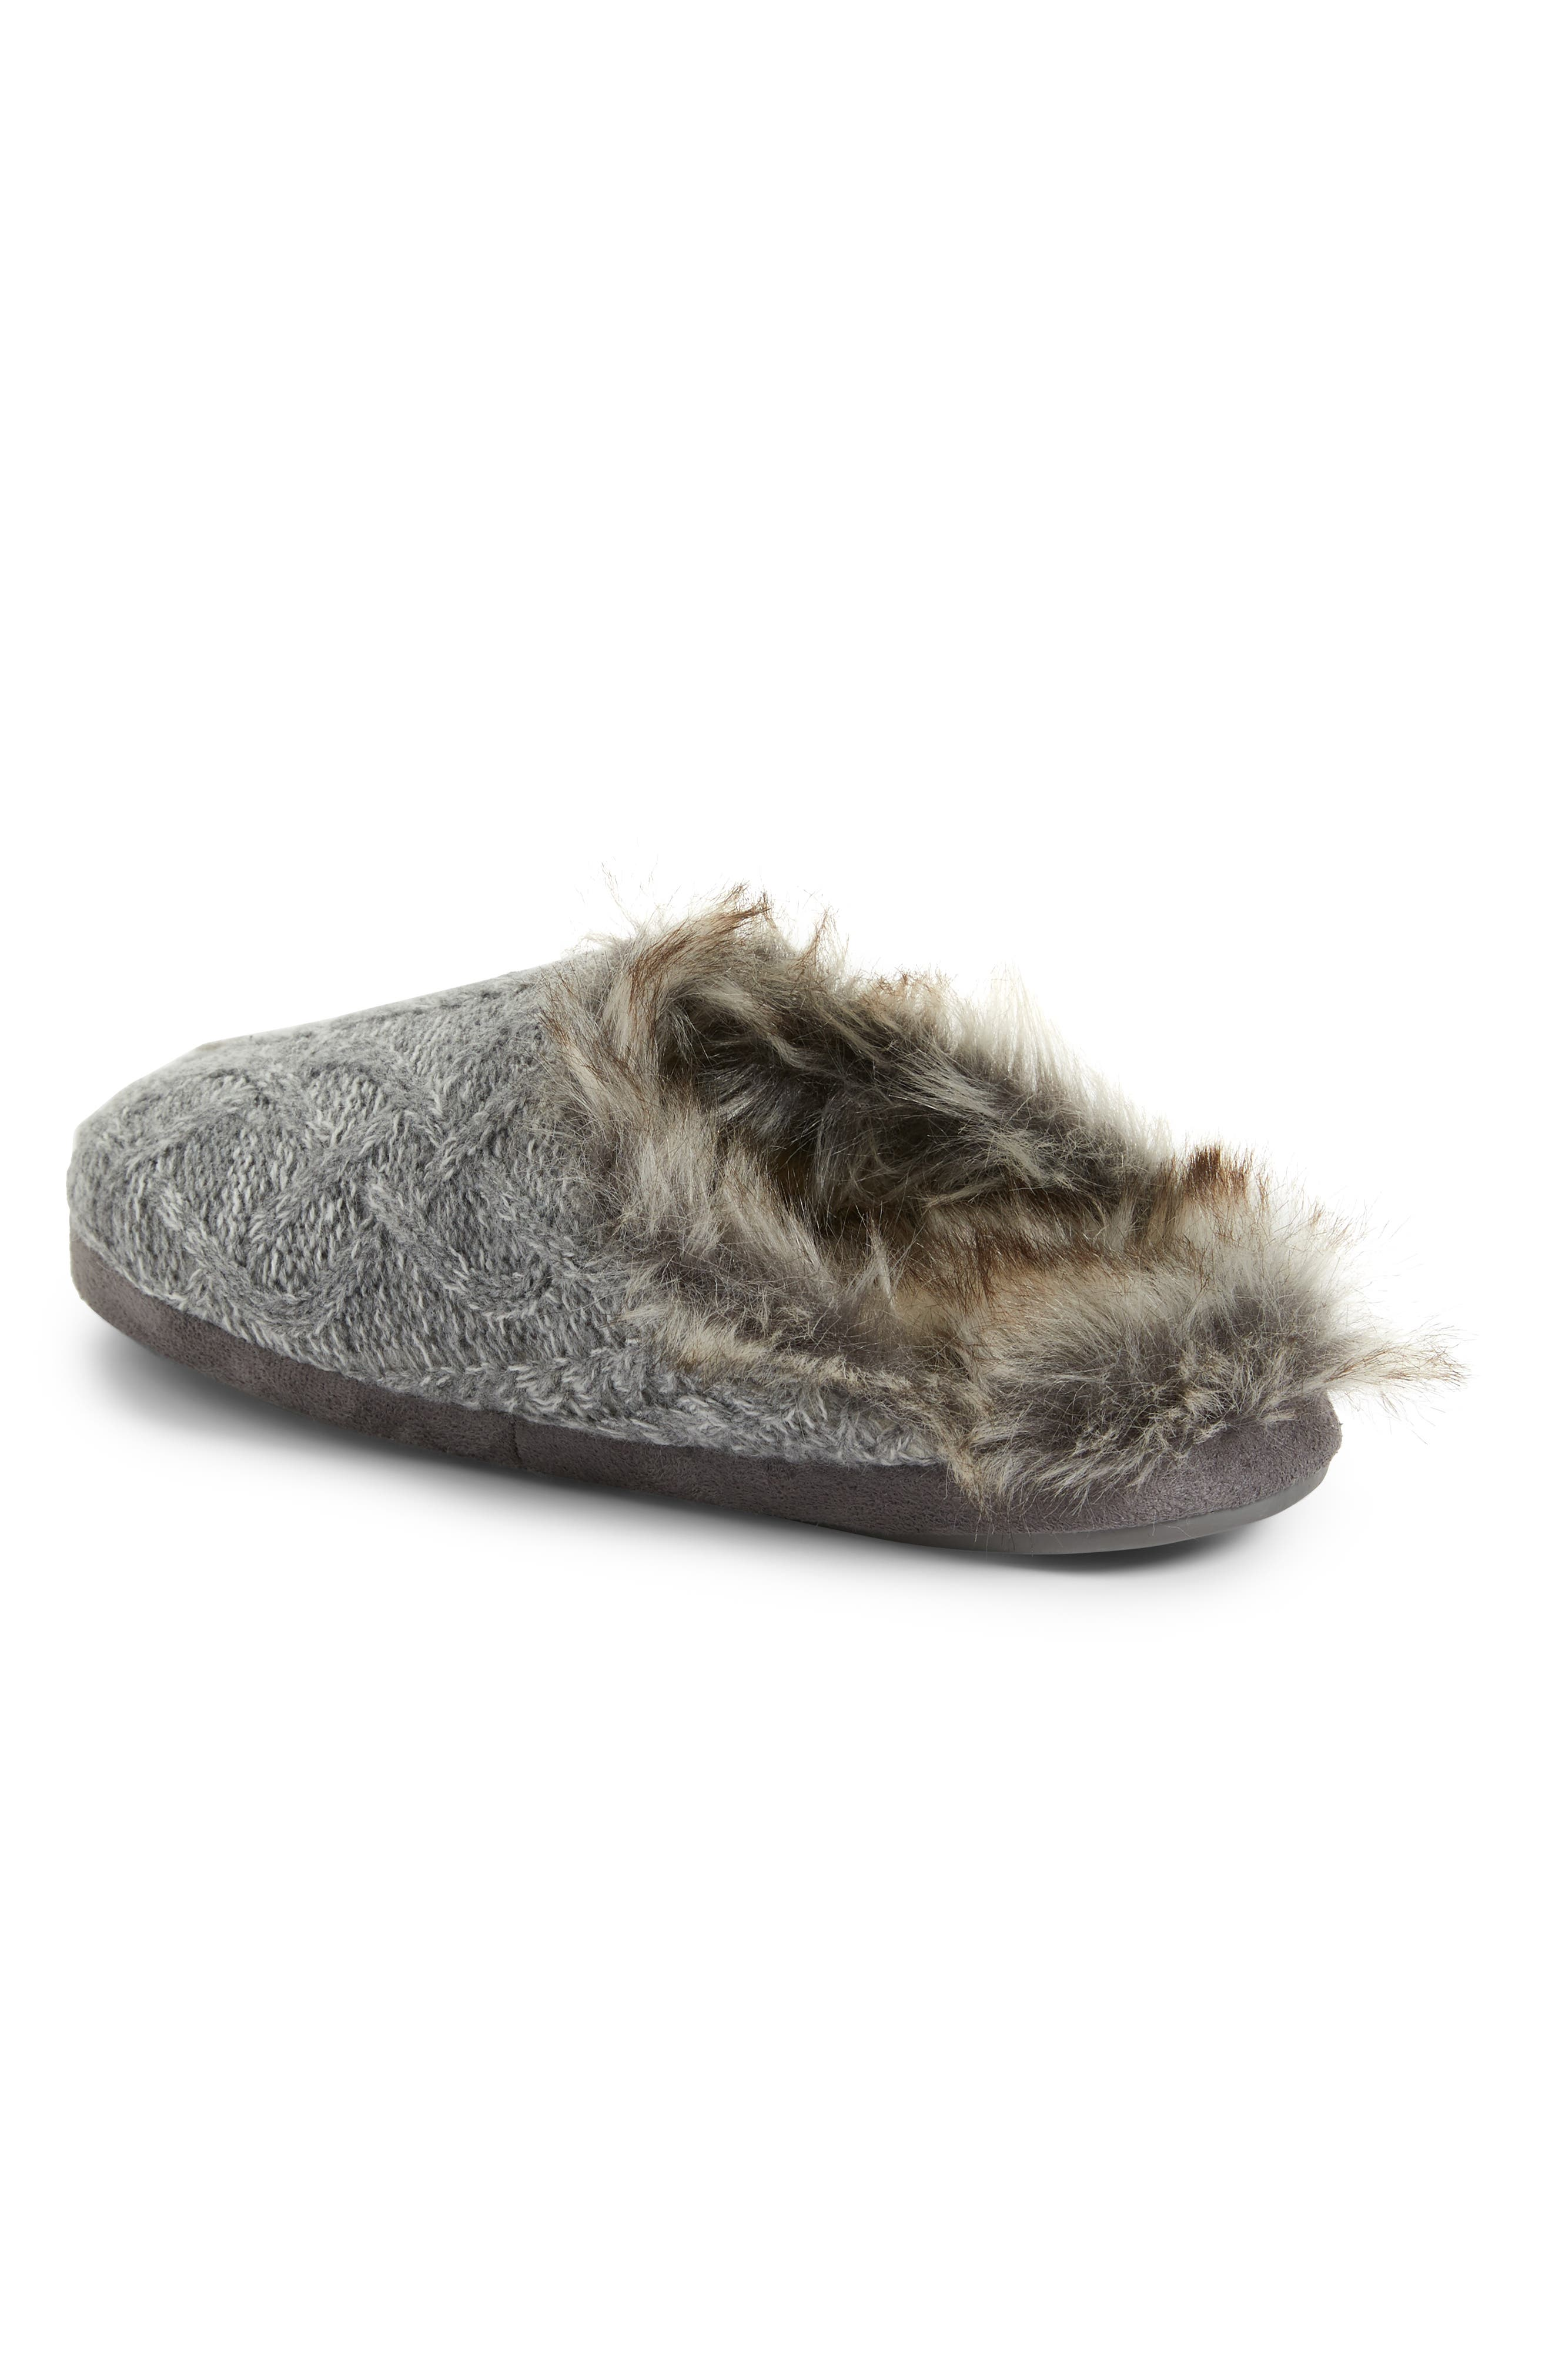 PJ SALVAGE, Faux Fur Trim Cable Knit Slipper, Alternate thumbnail 2, color, HEATHER GREY